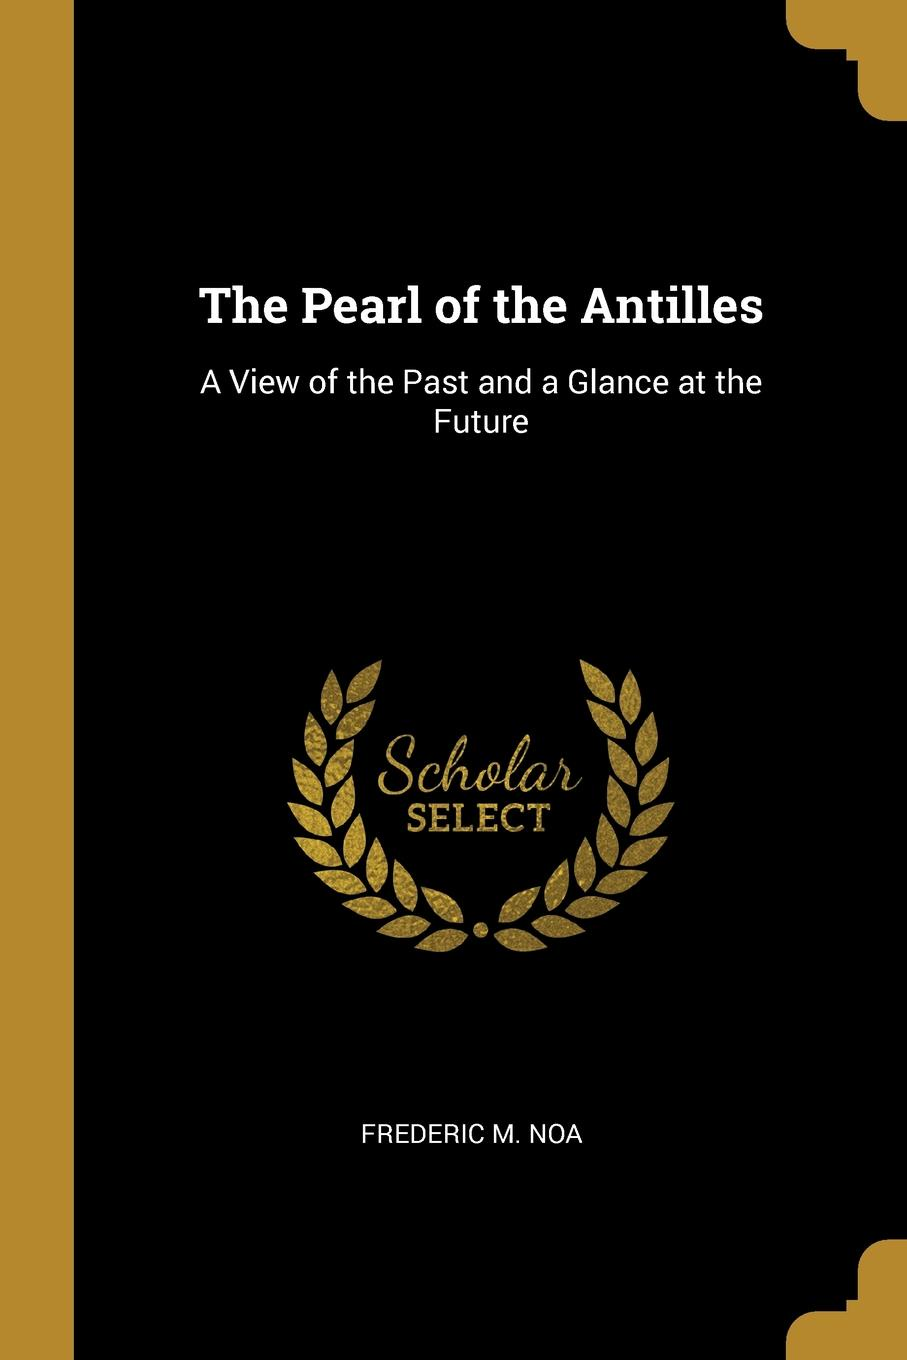 Frederic M. Noa The Pearl of the Antilles. A View of the Past and a Glance at the Future